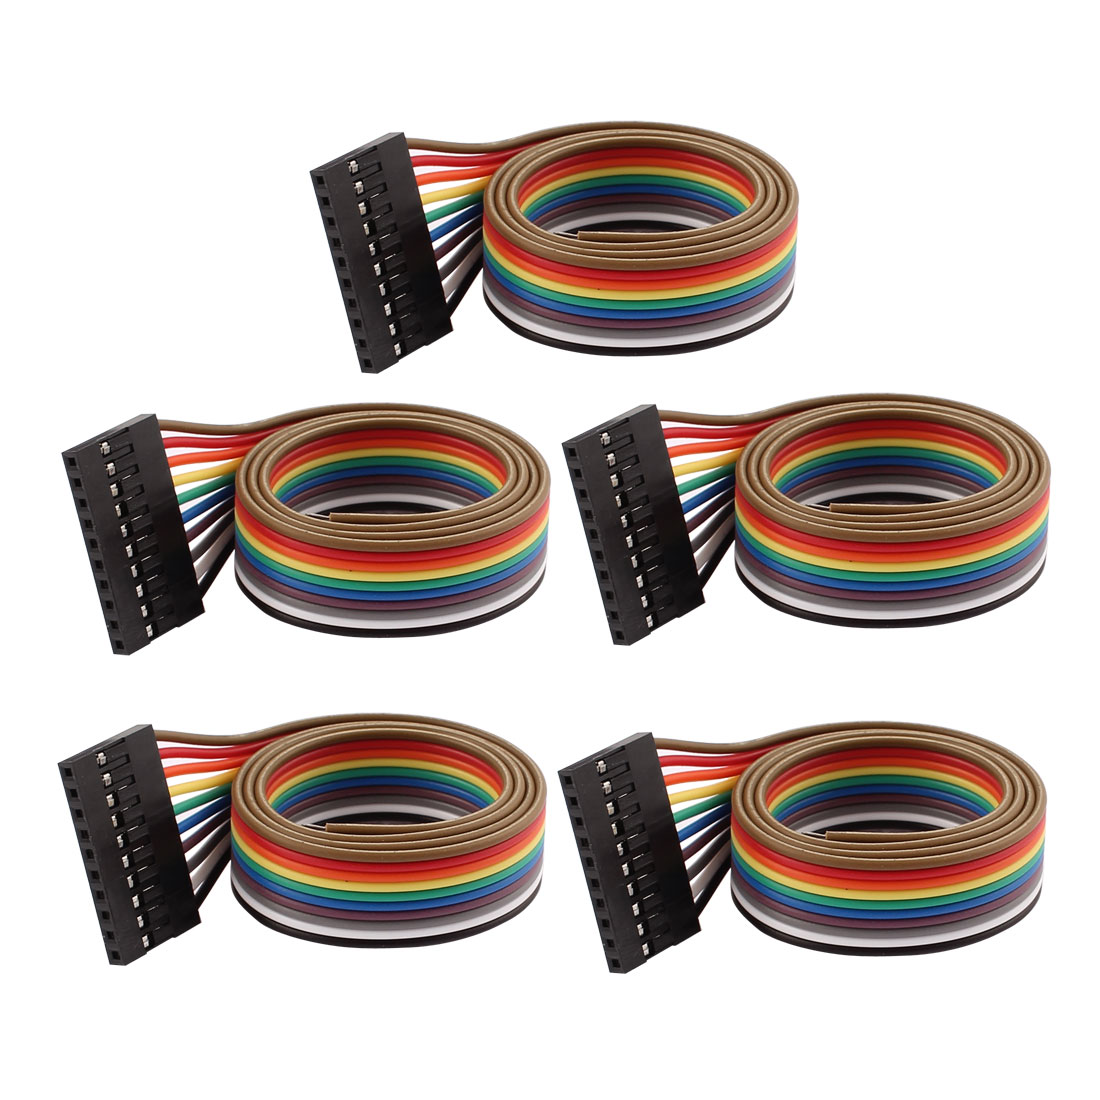 5 Pcs 10P Jumper Wires Female Ribbon Cables Pi Pic Breadboard DIY 40cm Long